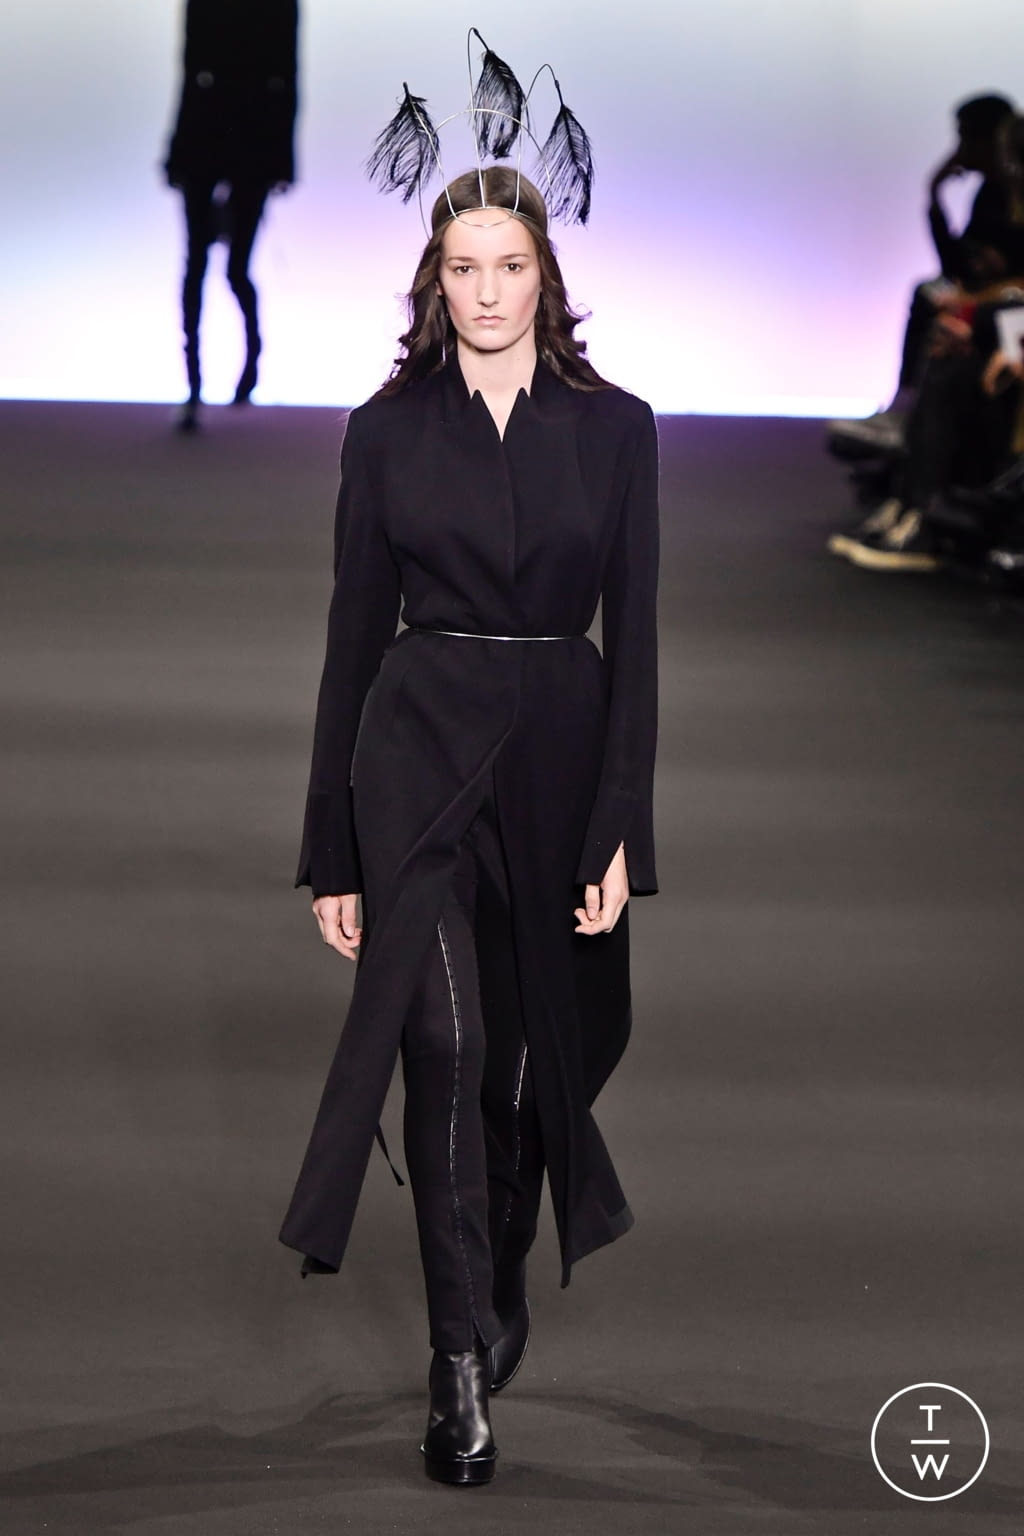 Fashion Week Paris Fall/Winter 2020 look 2 from the Ann Demeulemeester collection 女装